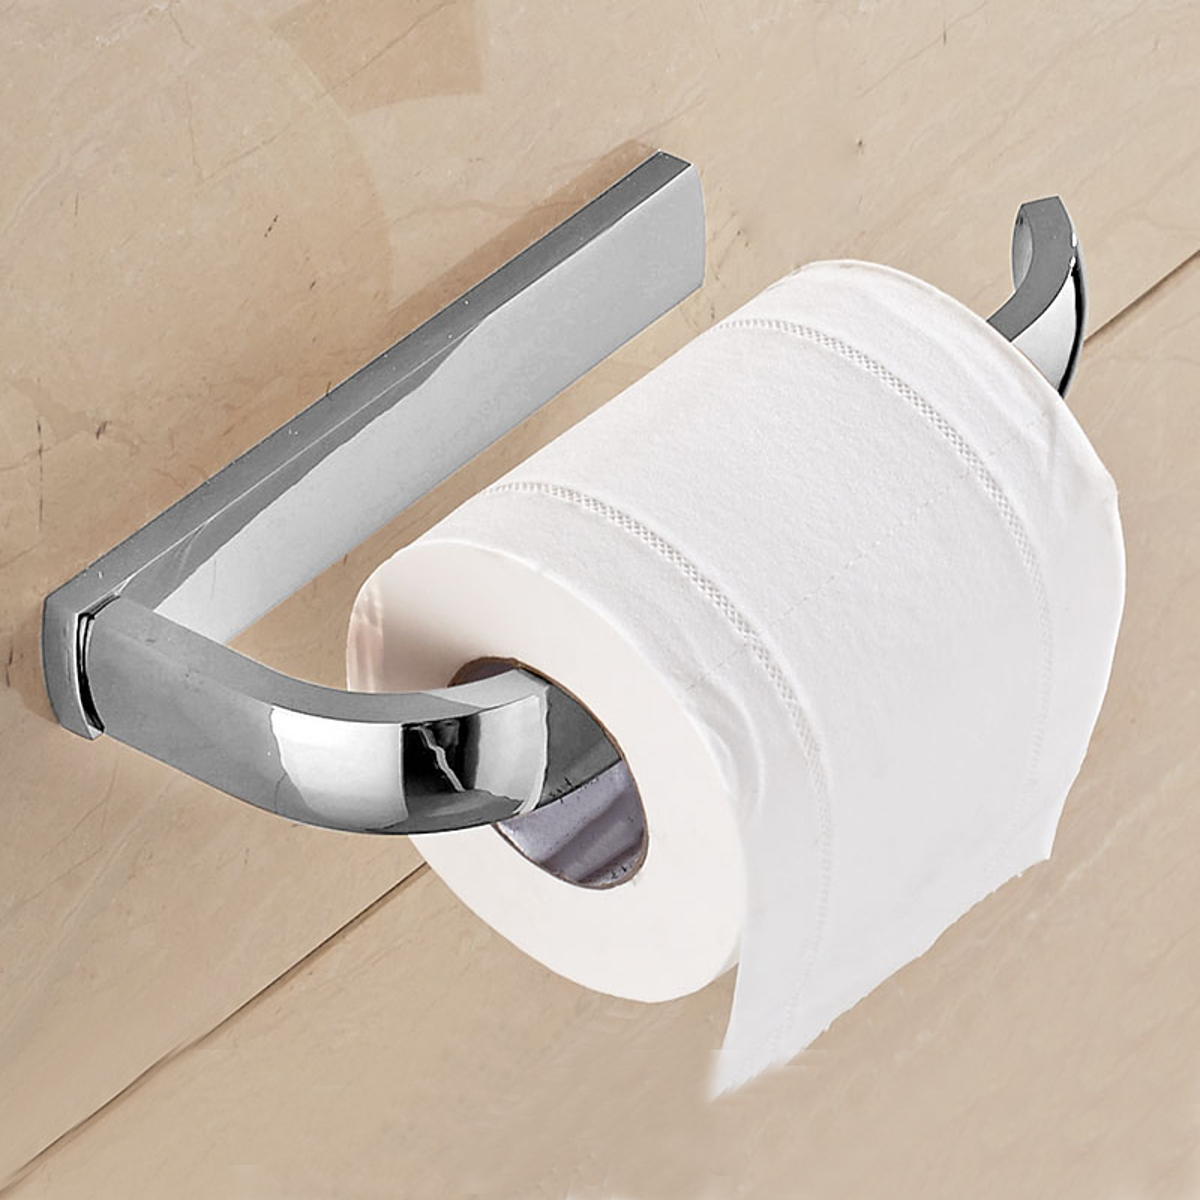 Brass Wall Mounted Bathroom Toilet Paper Holder Rack Tissue Roll Stand Hook